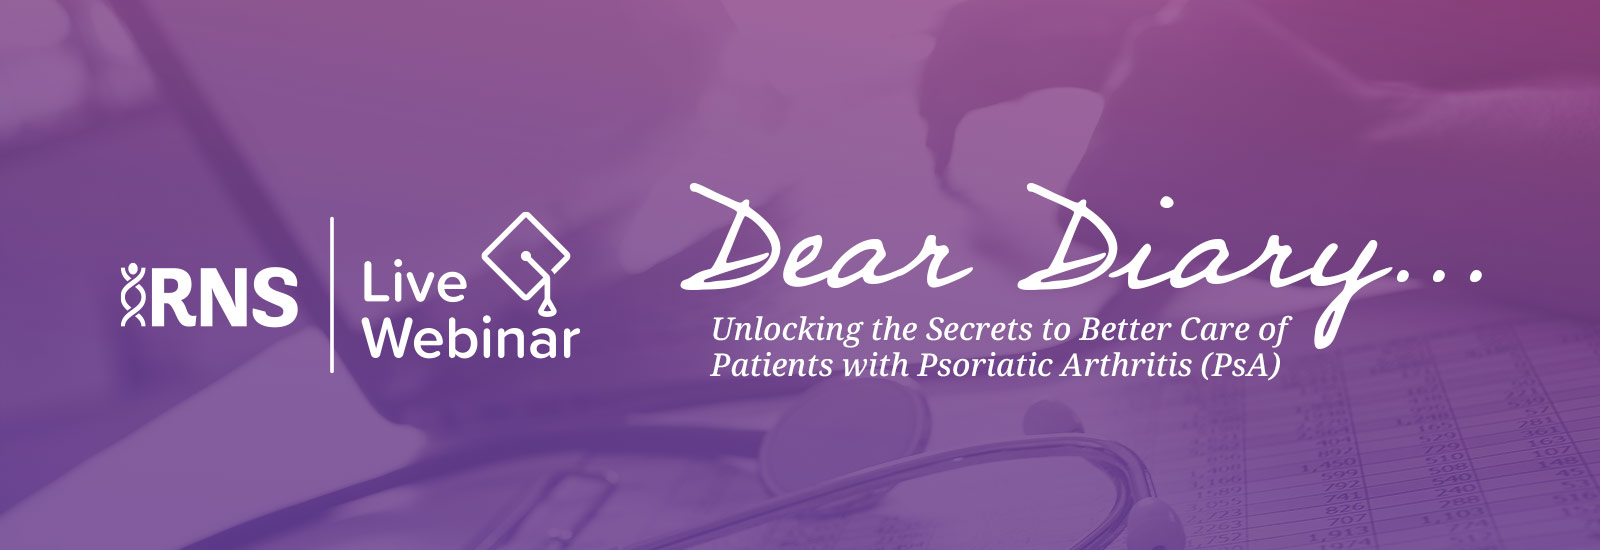 RNS Live Webinar: Dear Diary... Unlocking the Secrets to Better Care of Patients with Psoriatic Arthritis (PsA)